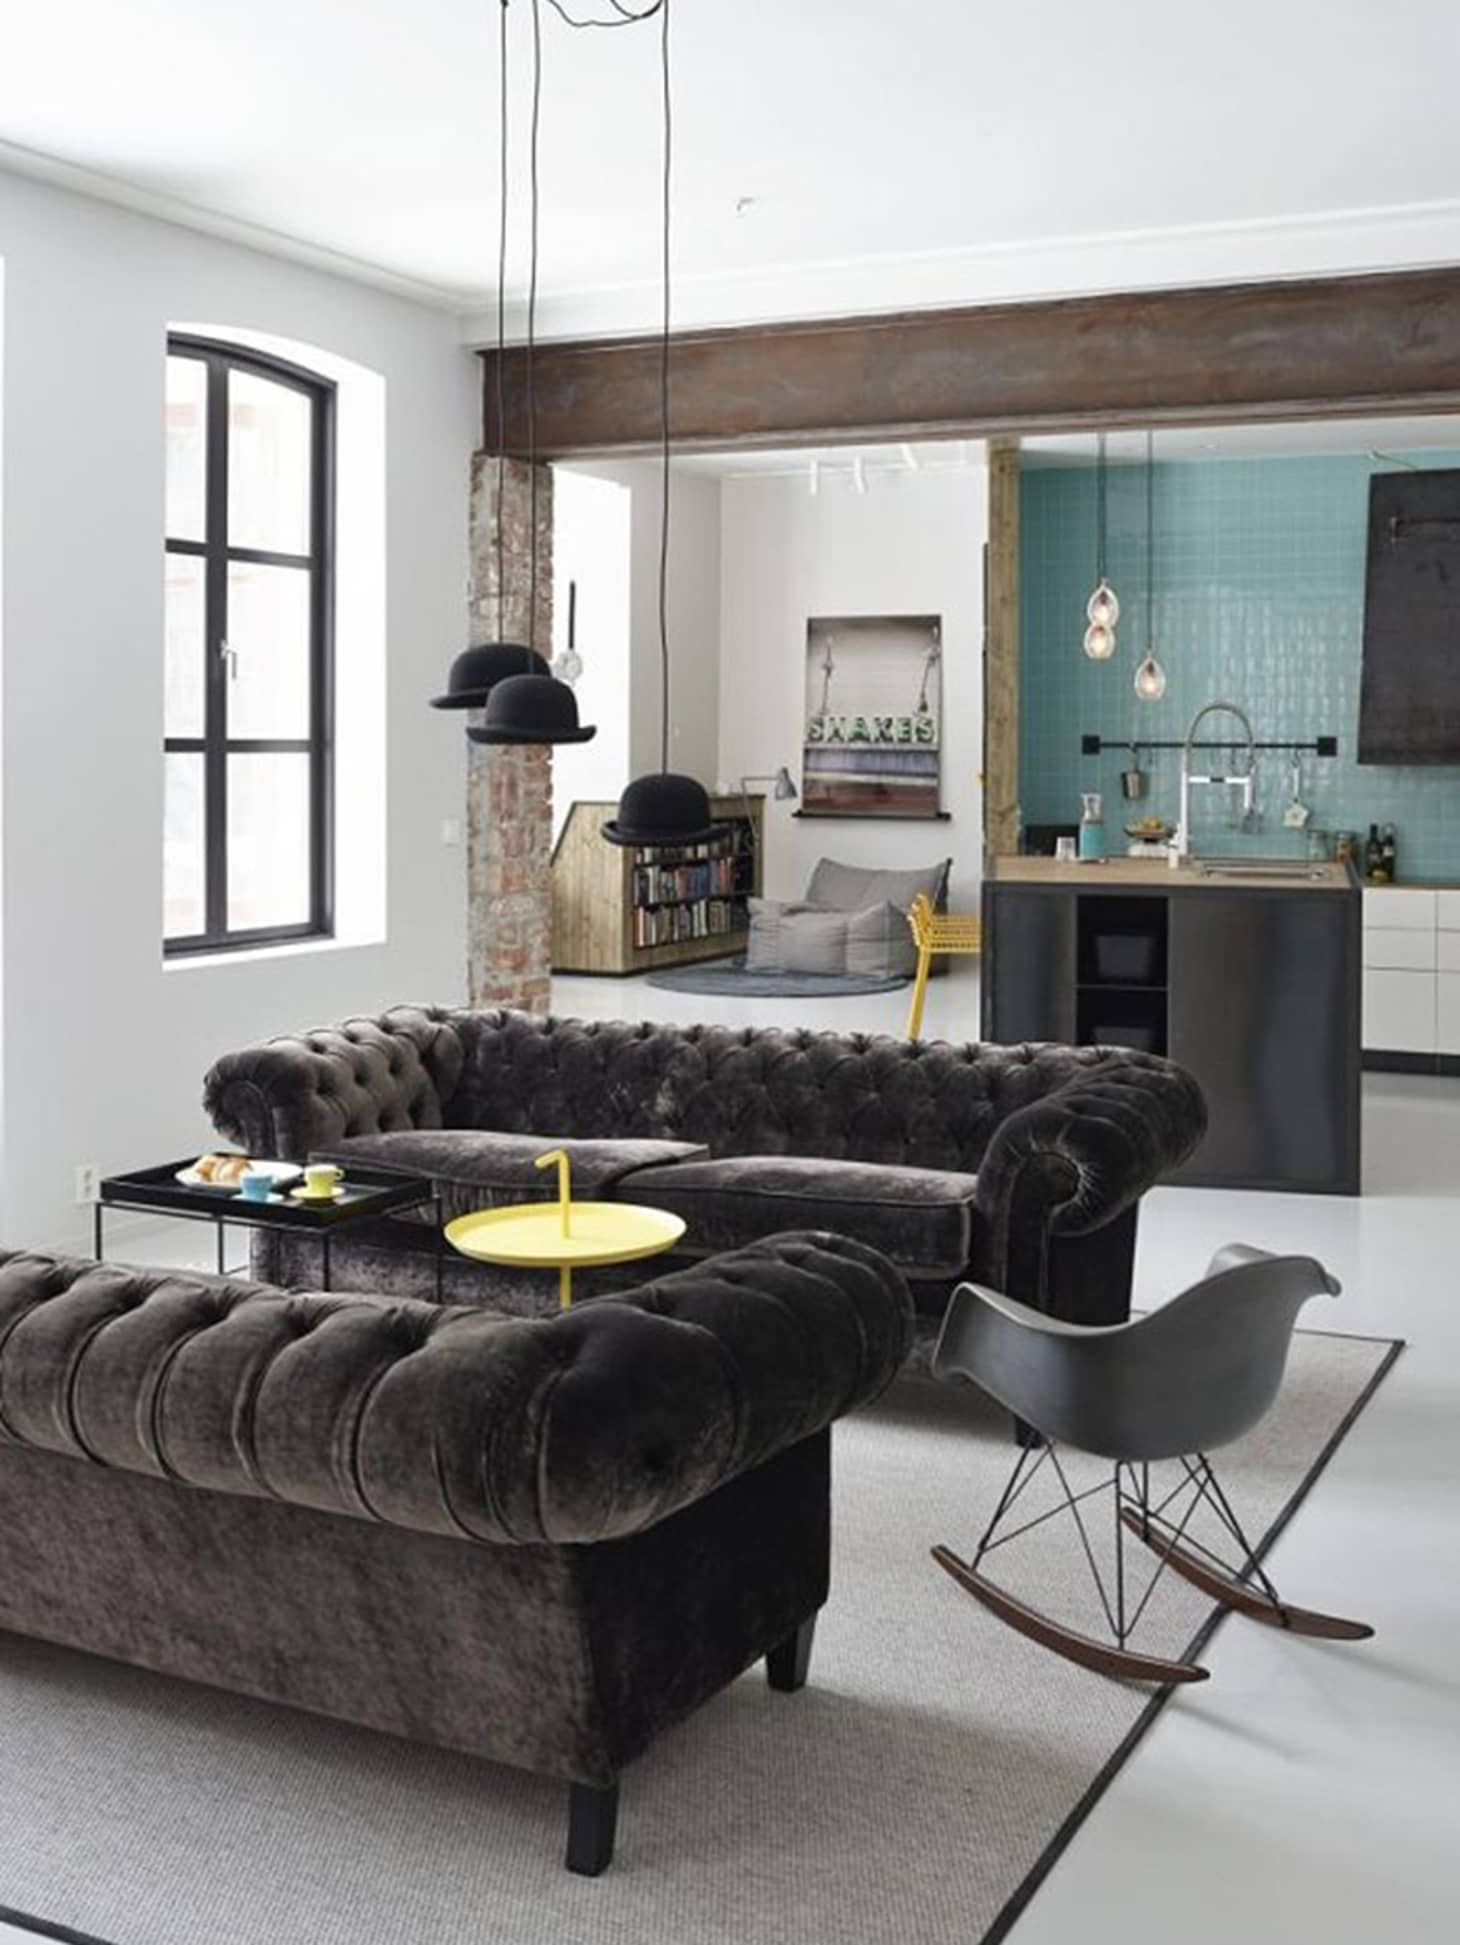 Remarkable Why You Should Face Sofas To Save Space Apartment Therapy Dailytribune Chair Design For Home Dailytribuneorg